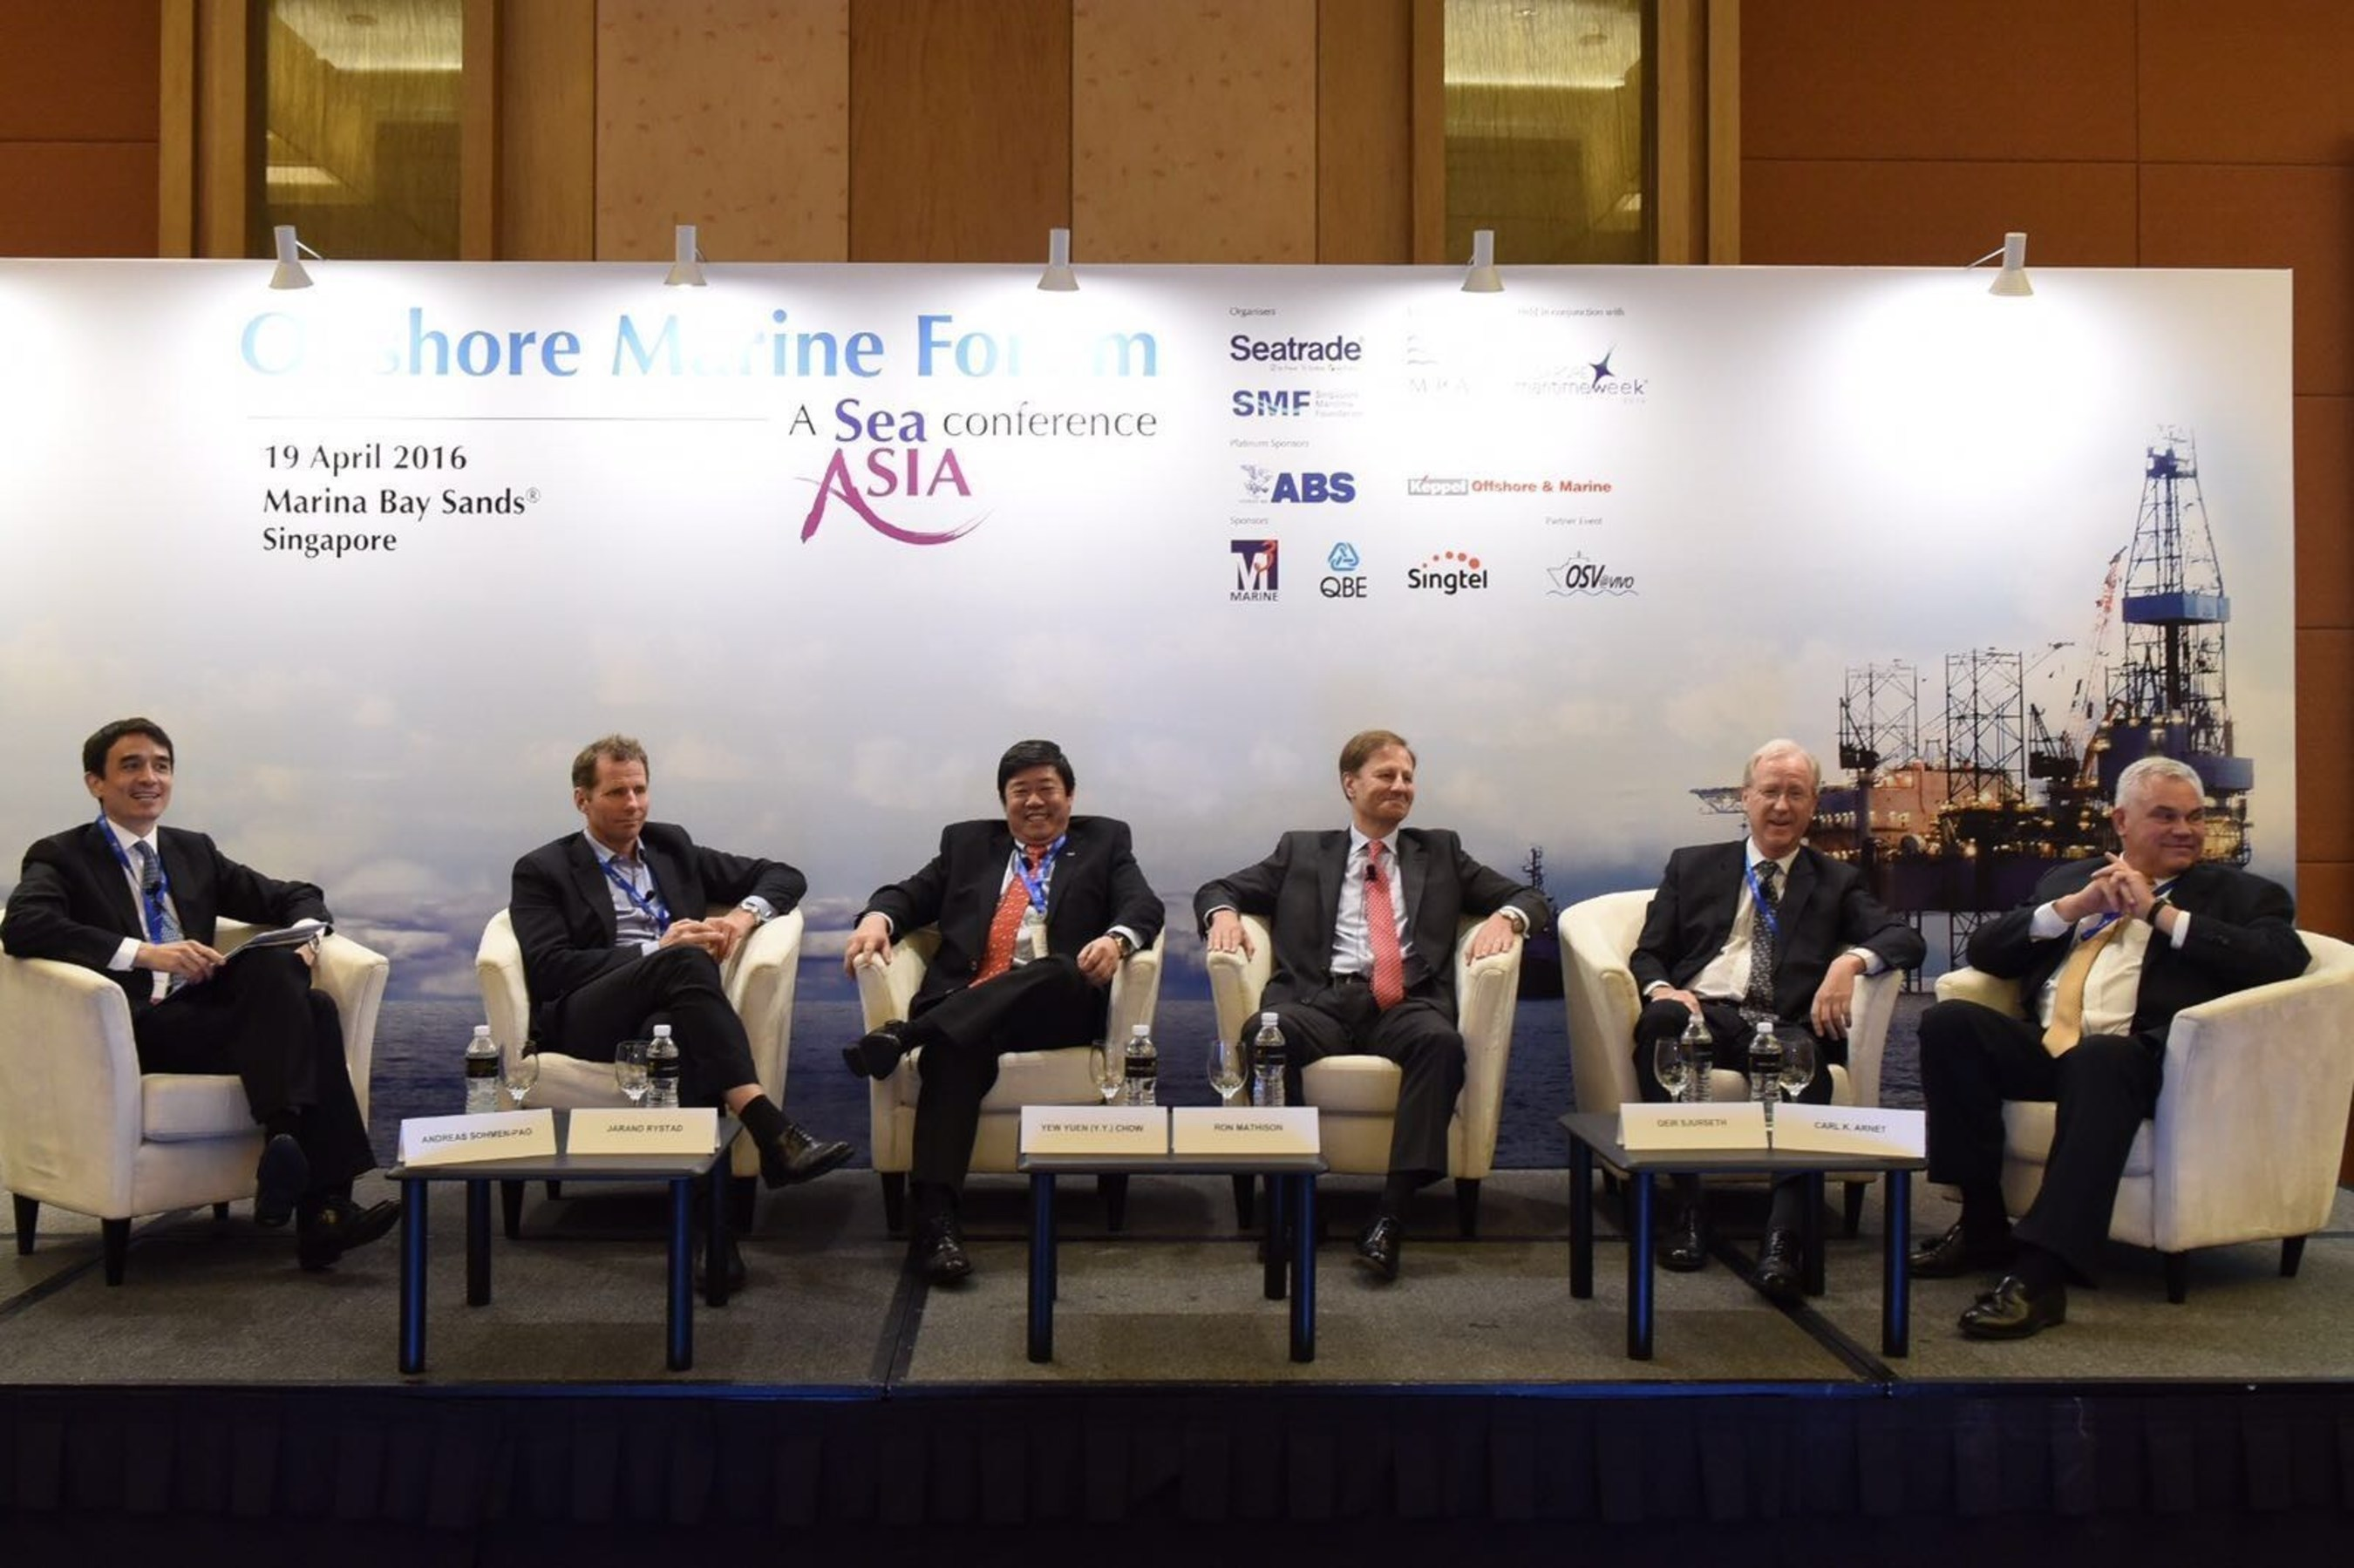 Panellists at the Offshore Marine Forum 2016